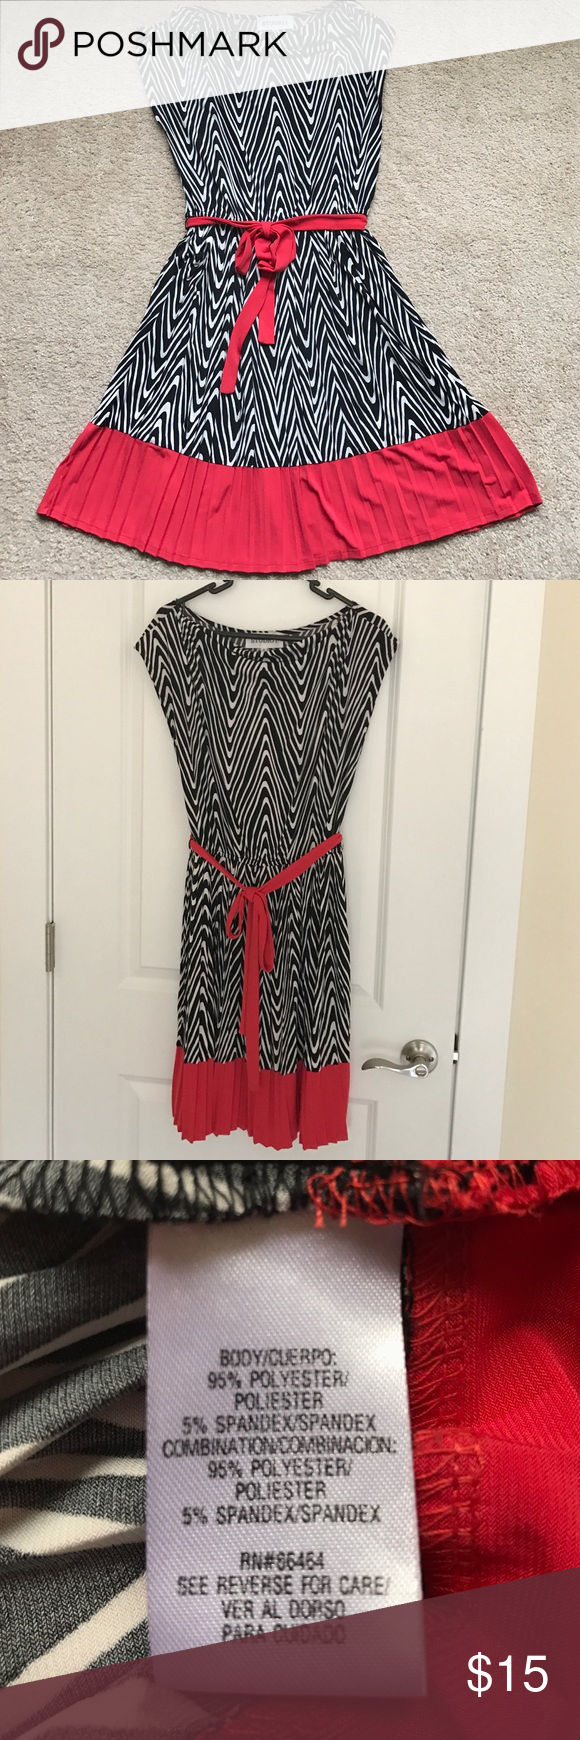 Beautiful flattering dress with red detail This feminine dress has an A cut that flatters any body type. It stretches and it's very comfortable. No iron needed! Looks great for work with black pumps studio I Dresses